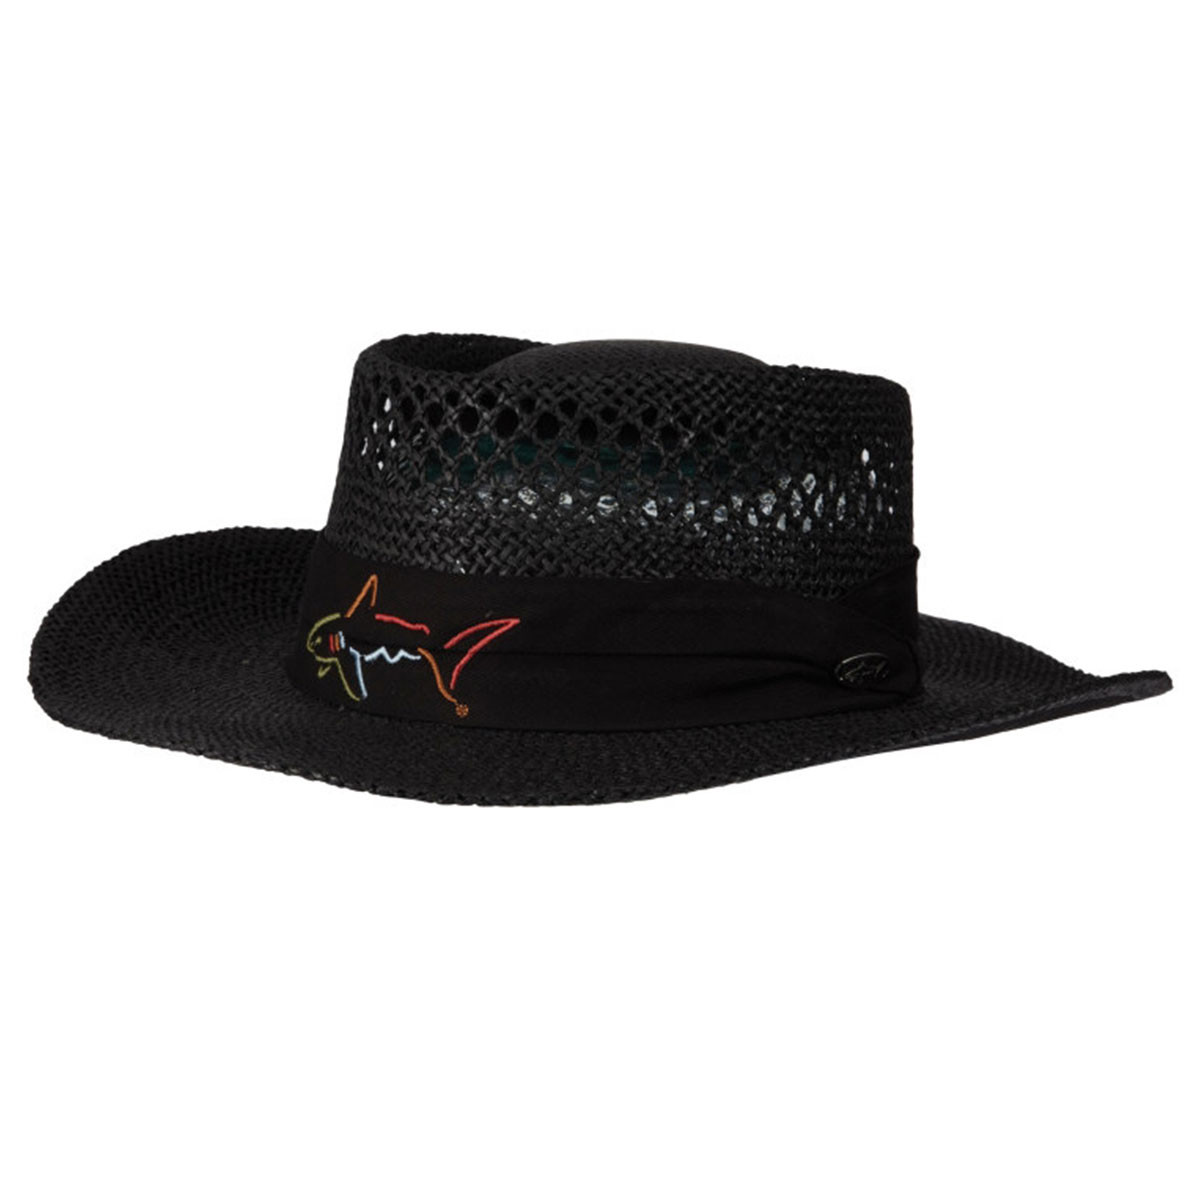 Greg Norman Mens Signature Straw Golf Hat - Greg Norman - A-Z of ... 85834073af1a